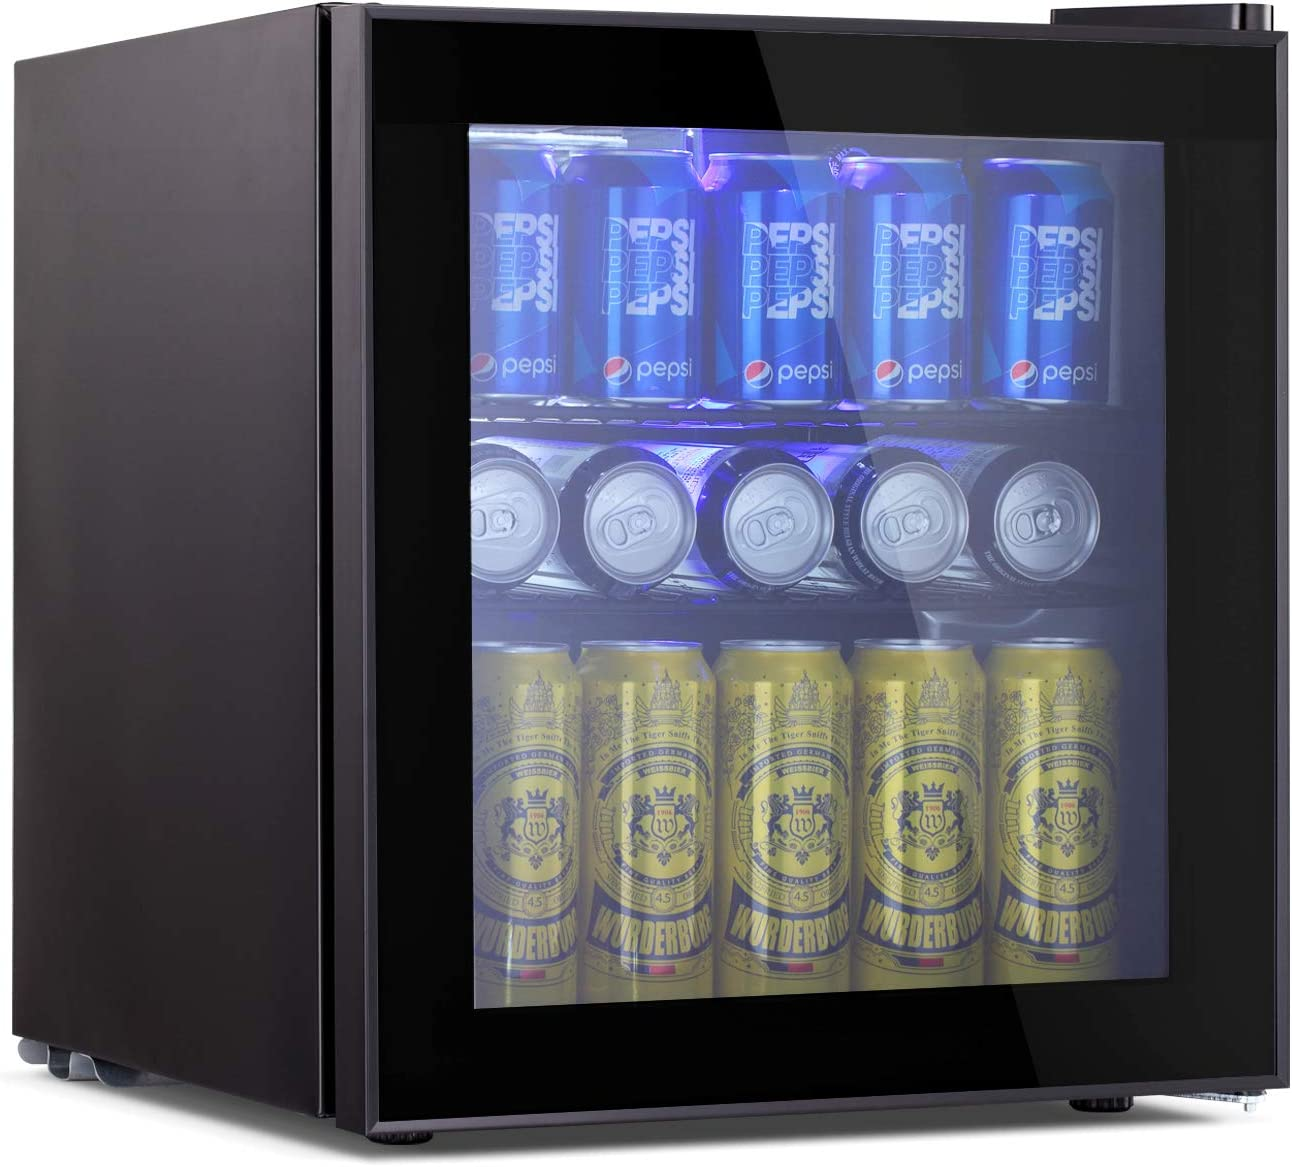 Beverage Refrigerator And Cooler 1 6 Cu Ft Drink Fridge With Glass Door For Soda Beer Or Wine Small Beverage Center With 1 Removable Shelves For Office Man Cave Basements And Home